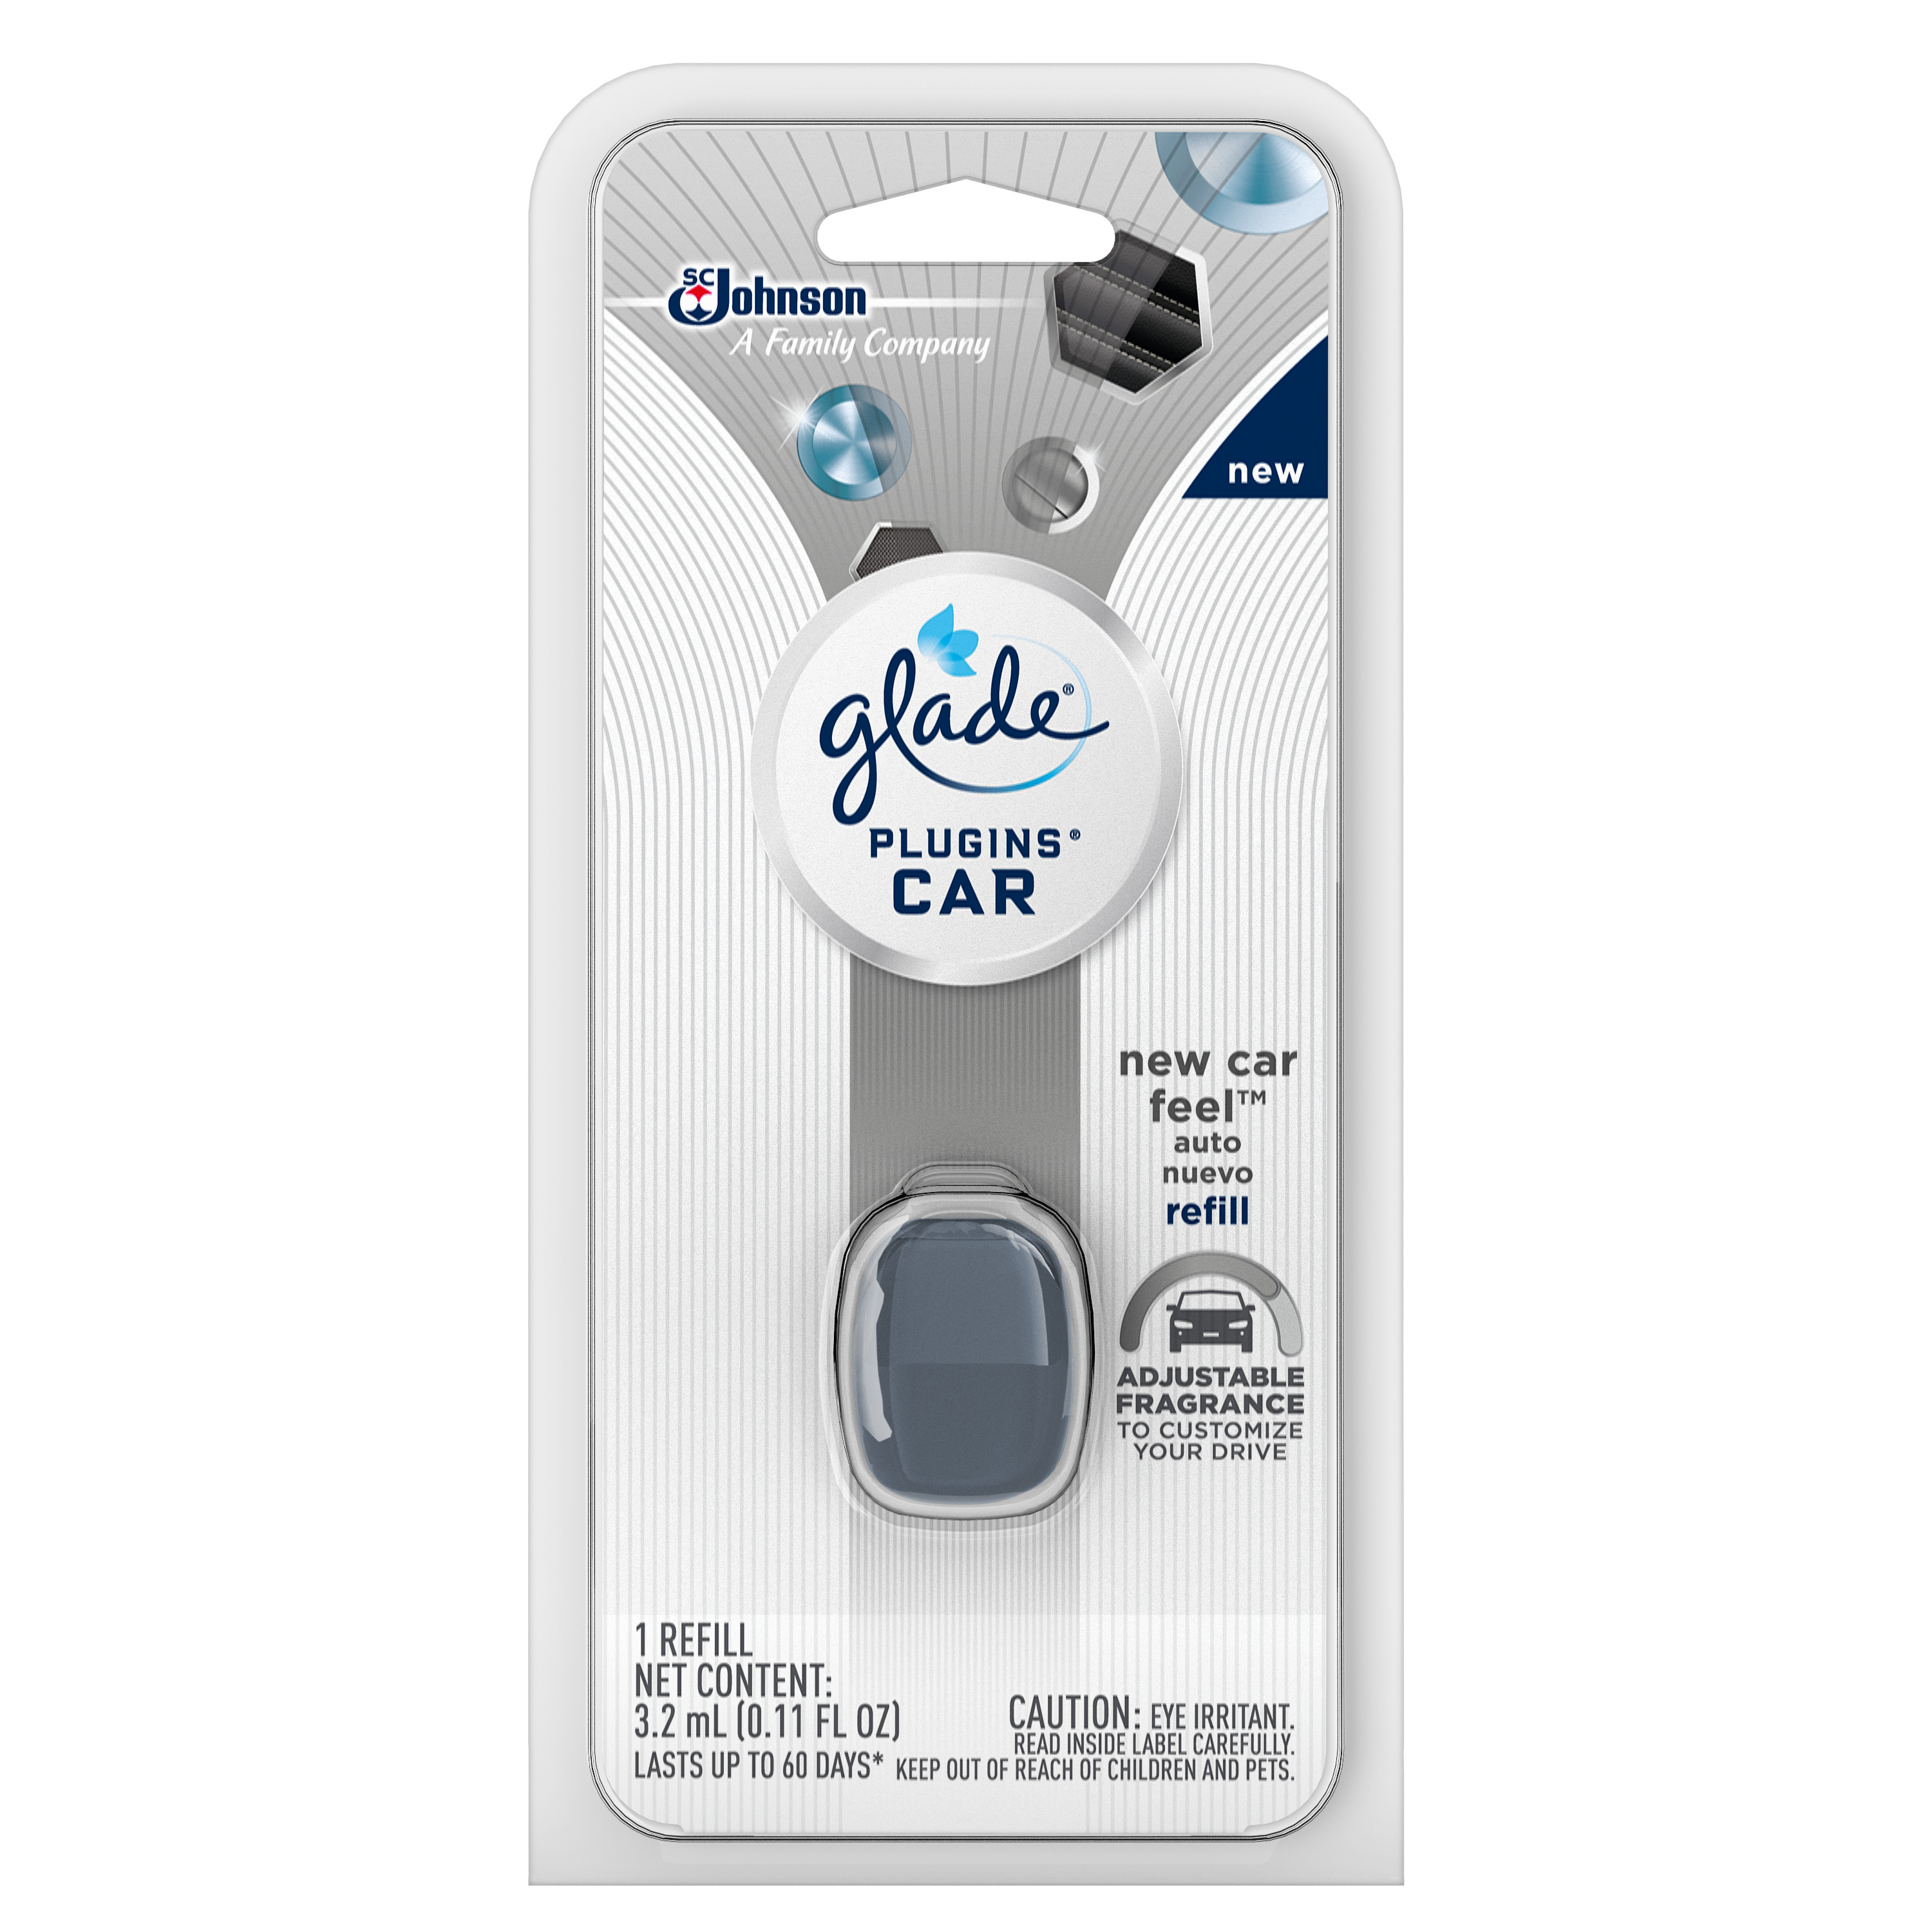 Glade PlugIns Car Air Freshener Refill, Blue Odyssey, 0.11 Fluid Ounces